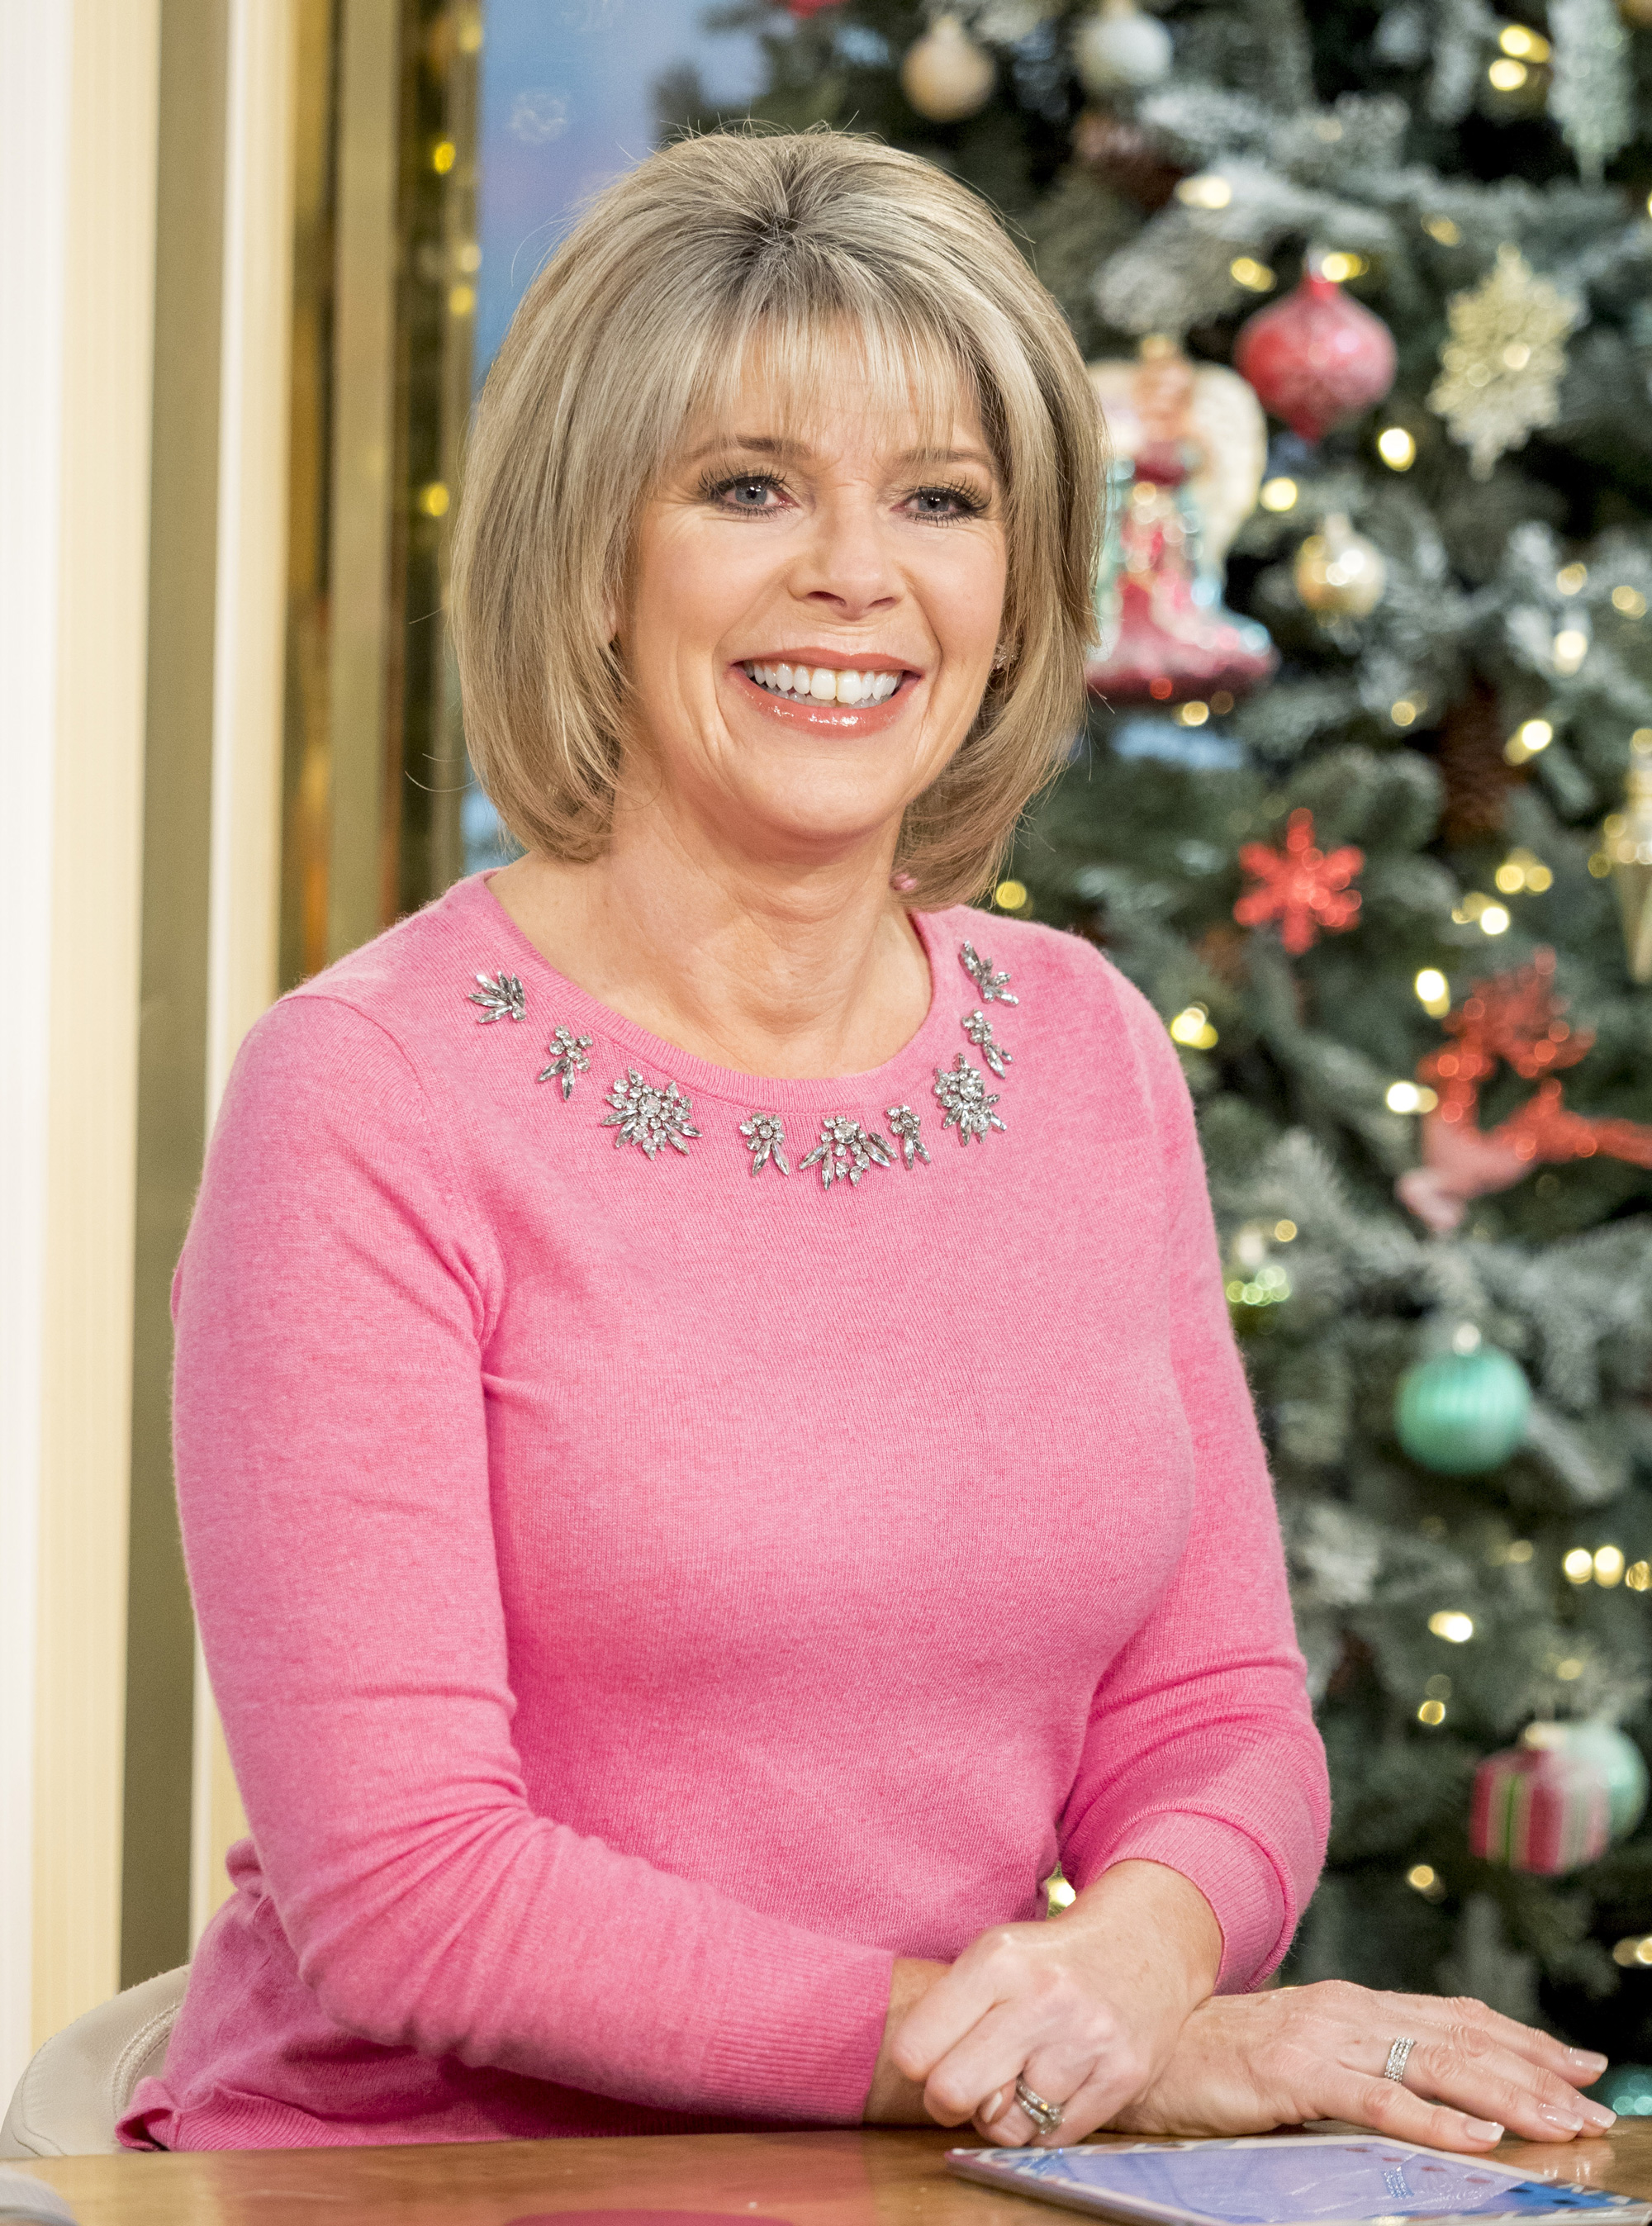 Fans Love Ruth Langsford's Festive Pink Jumper Live On